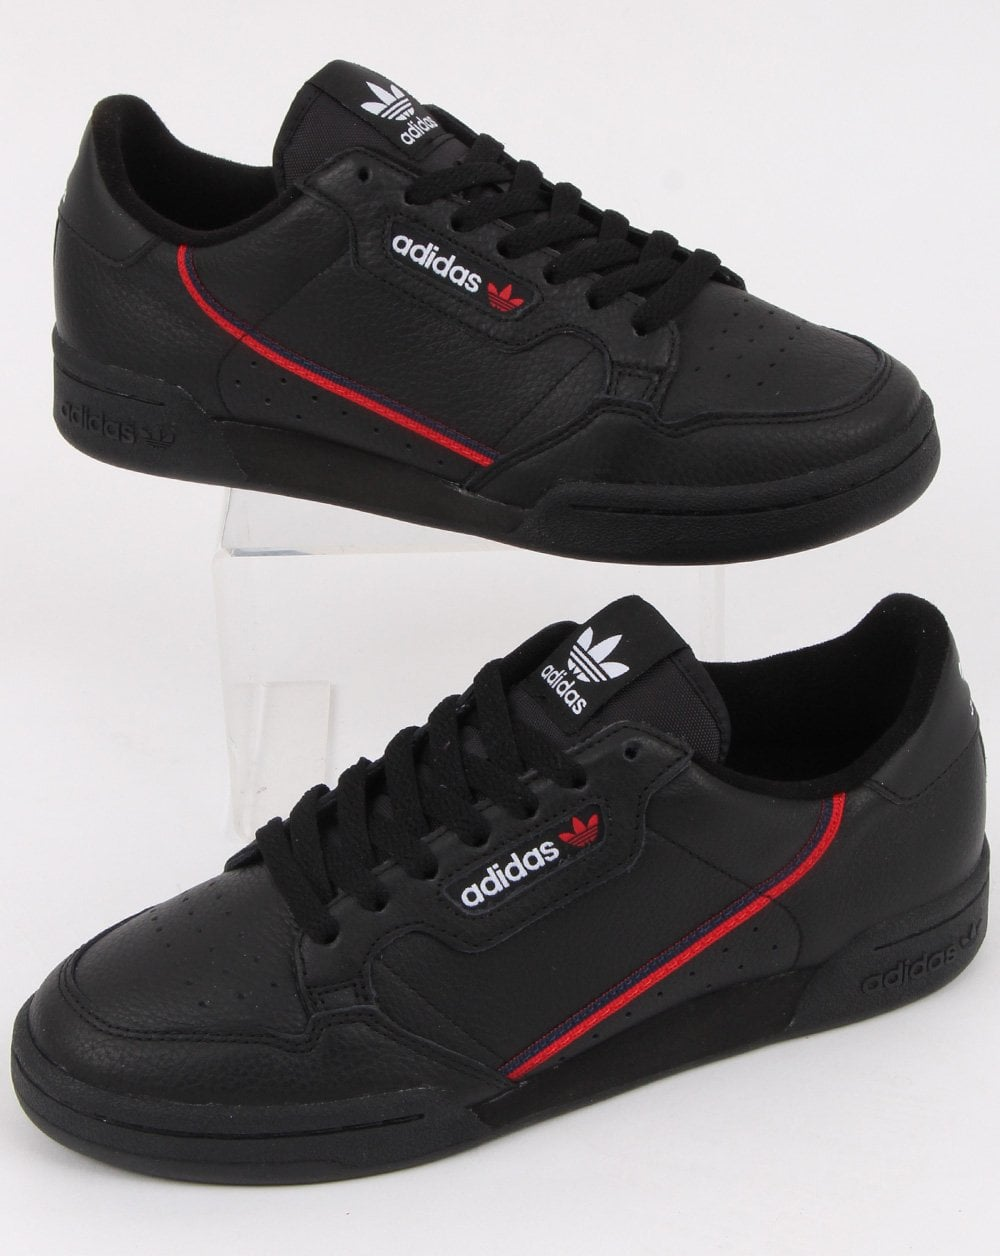 best sneakers 4e10d 0ccfc adidas Trainers Adidas Continental 80 Trainers Black scarlet navy